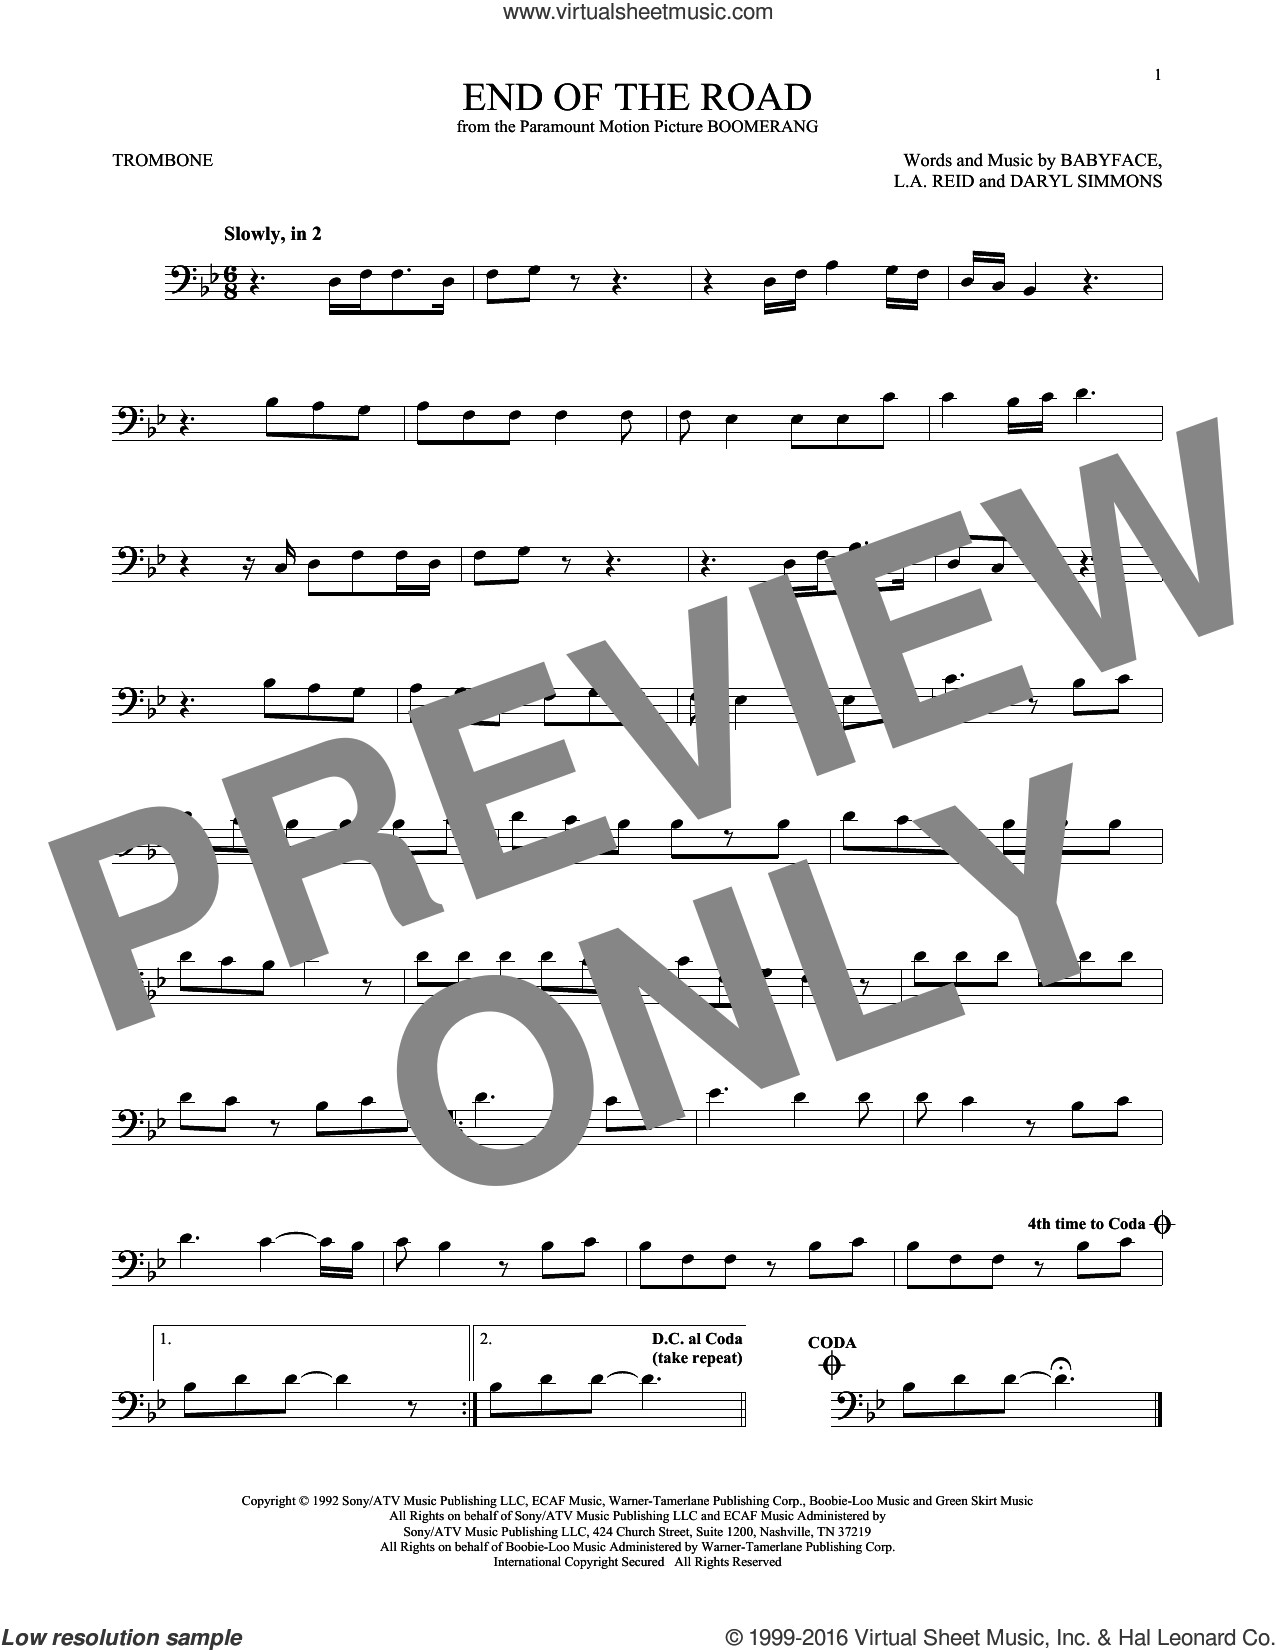 End Of The Road sheet music for trombone solo by Boyz II Men, Babyface, DARYL SIMMONS and L.A. Reid, intermediate skill level